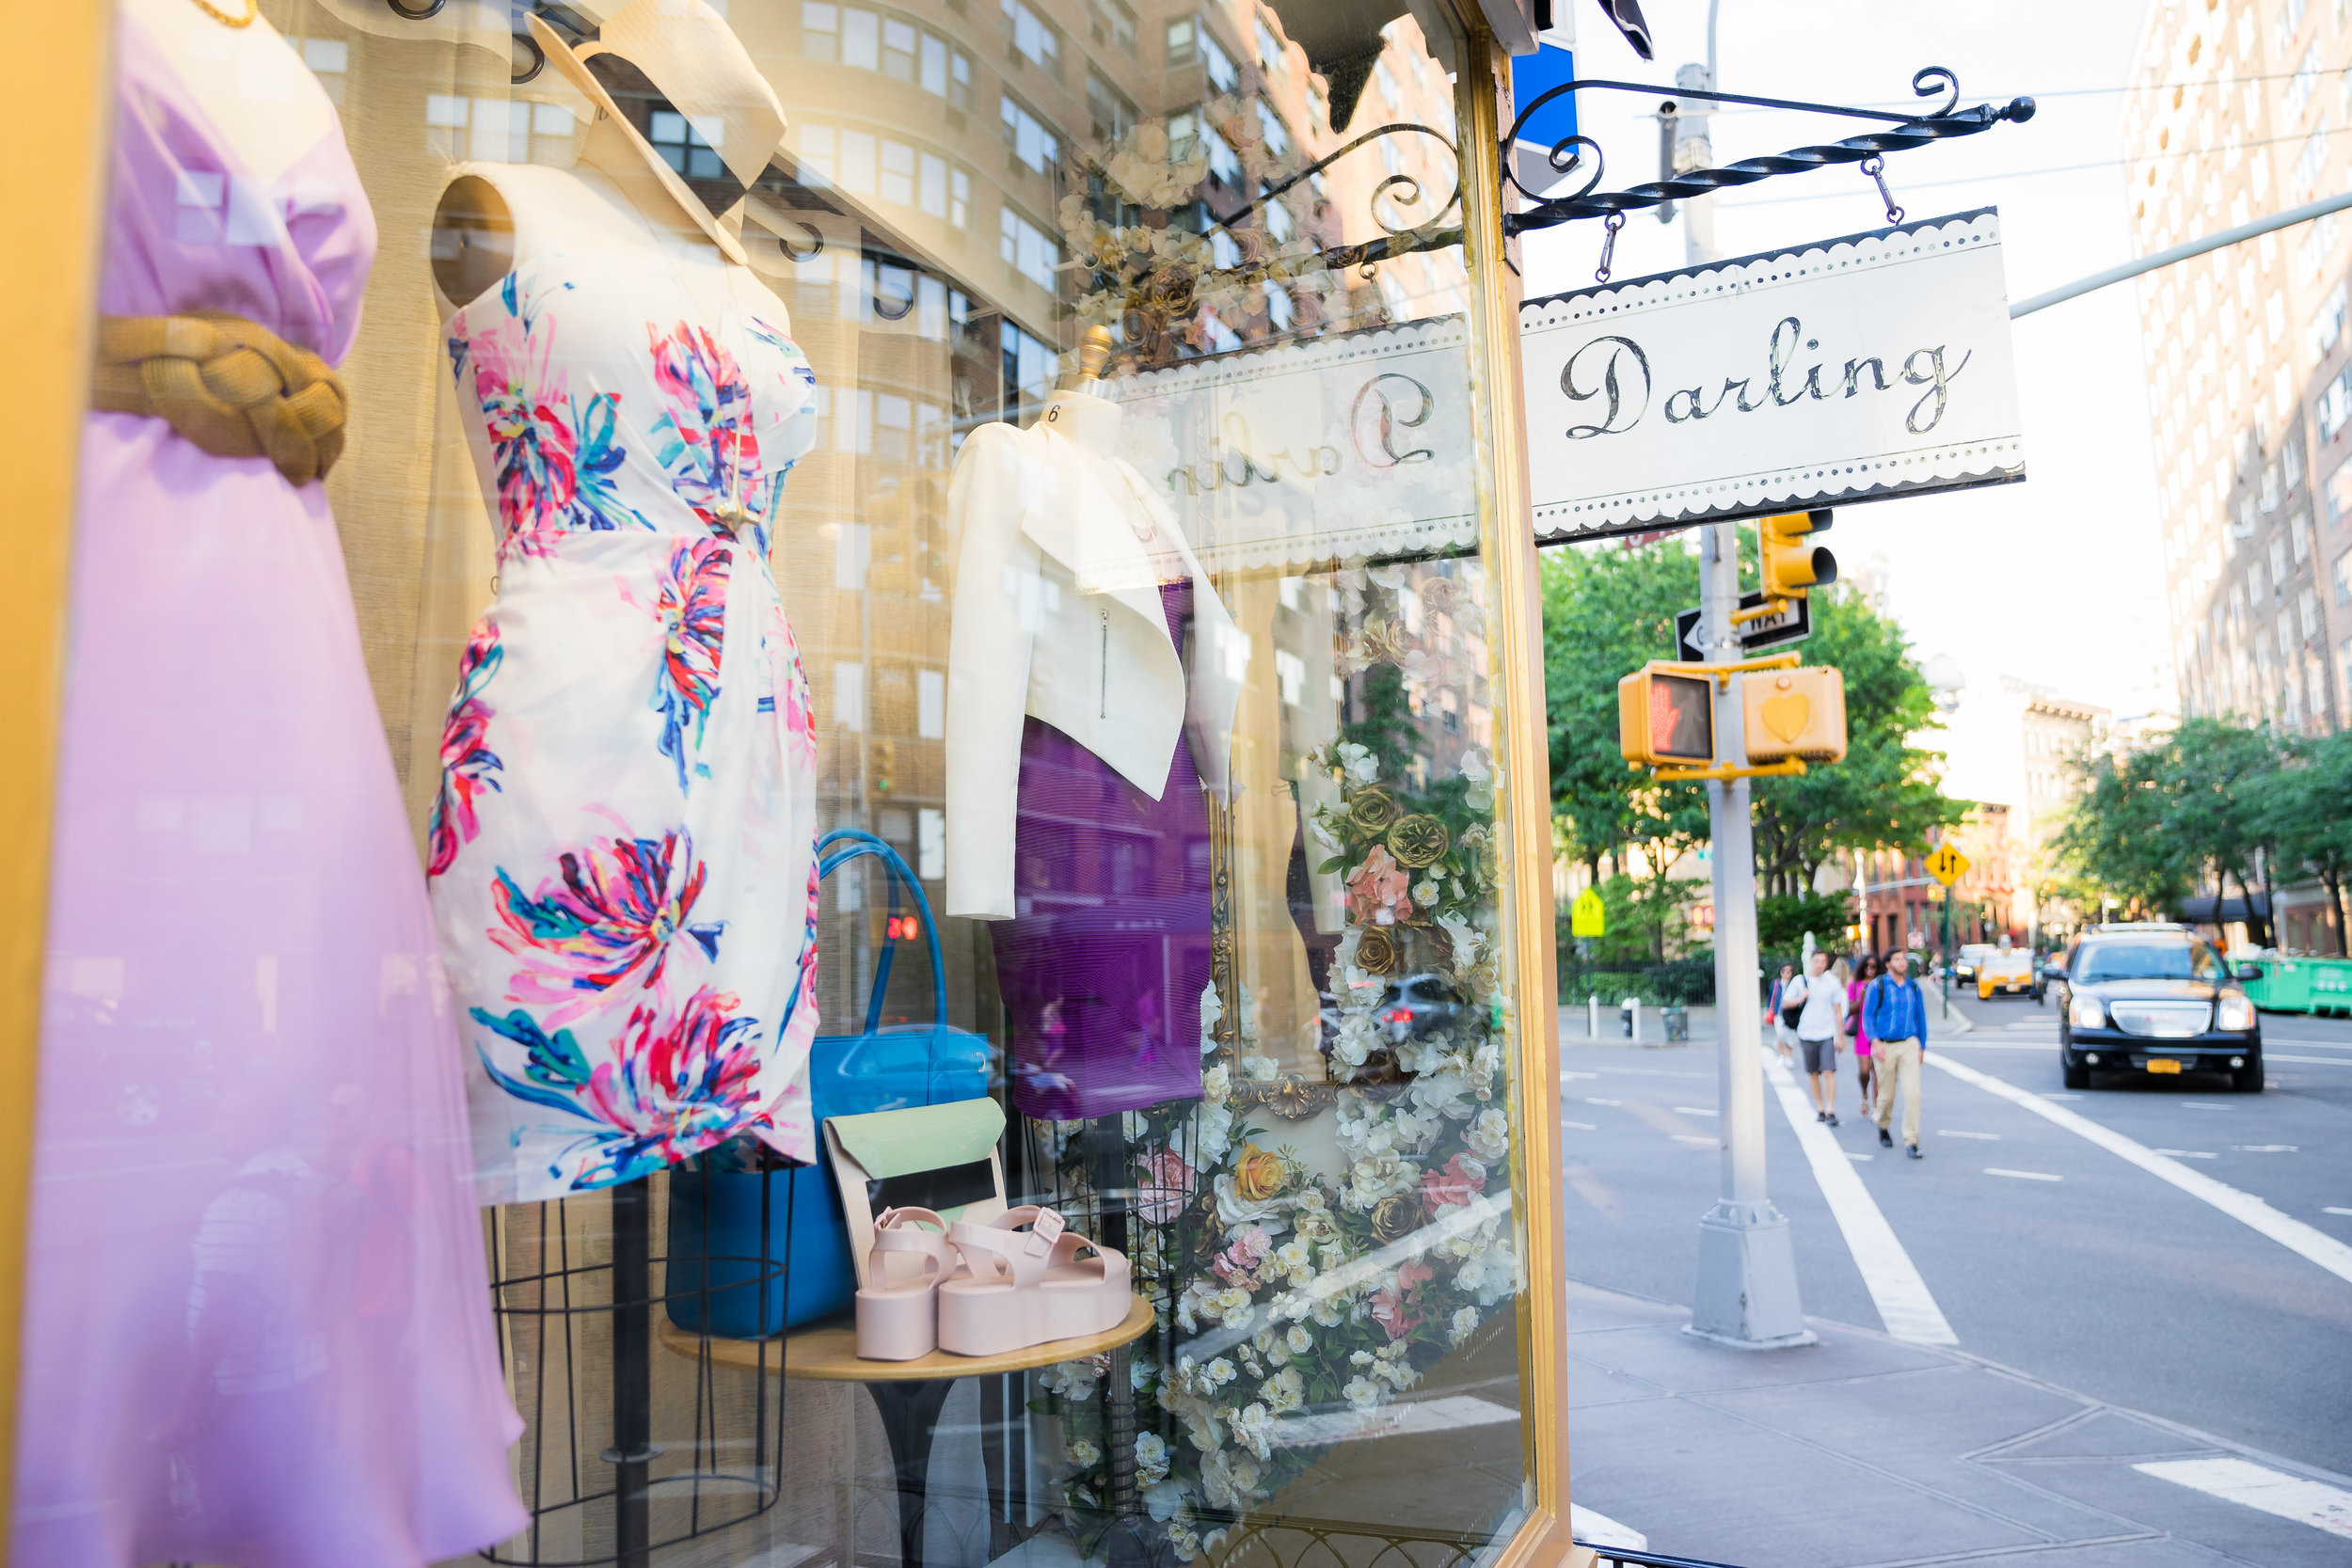 Darling_Boutique_Window_Spring.jpg